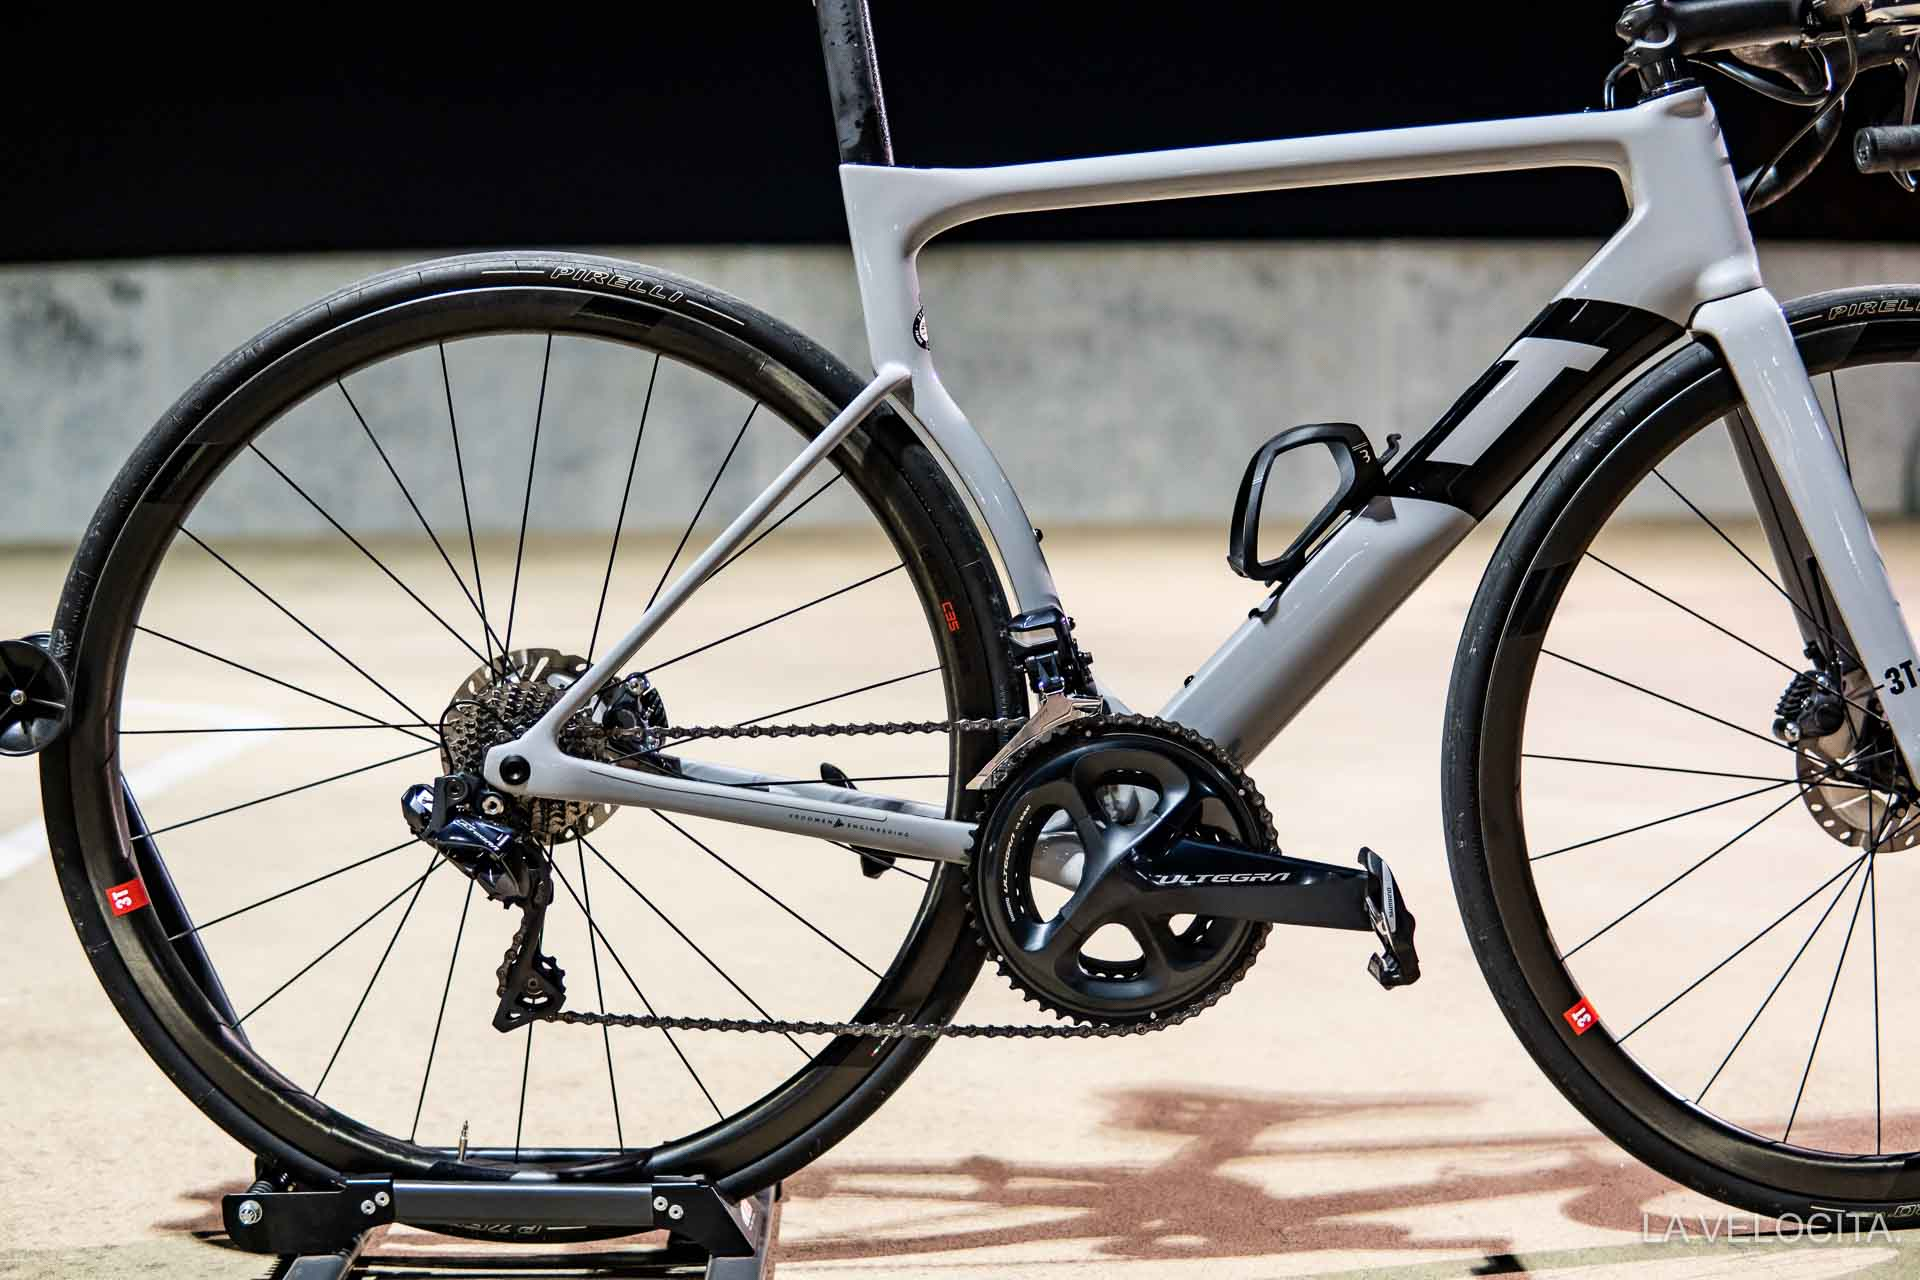 Ultegra Di2 really is superb